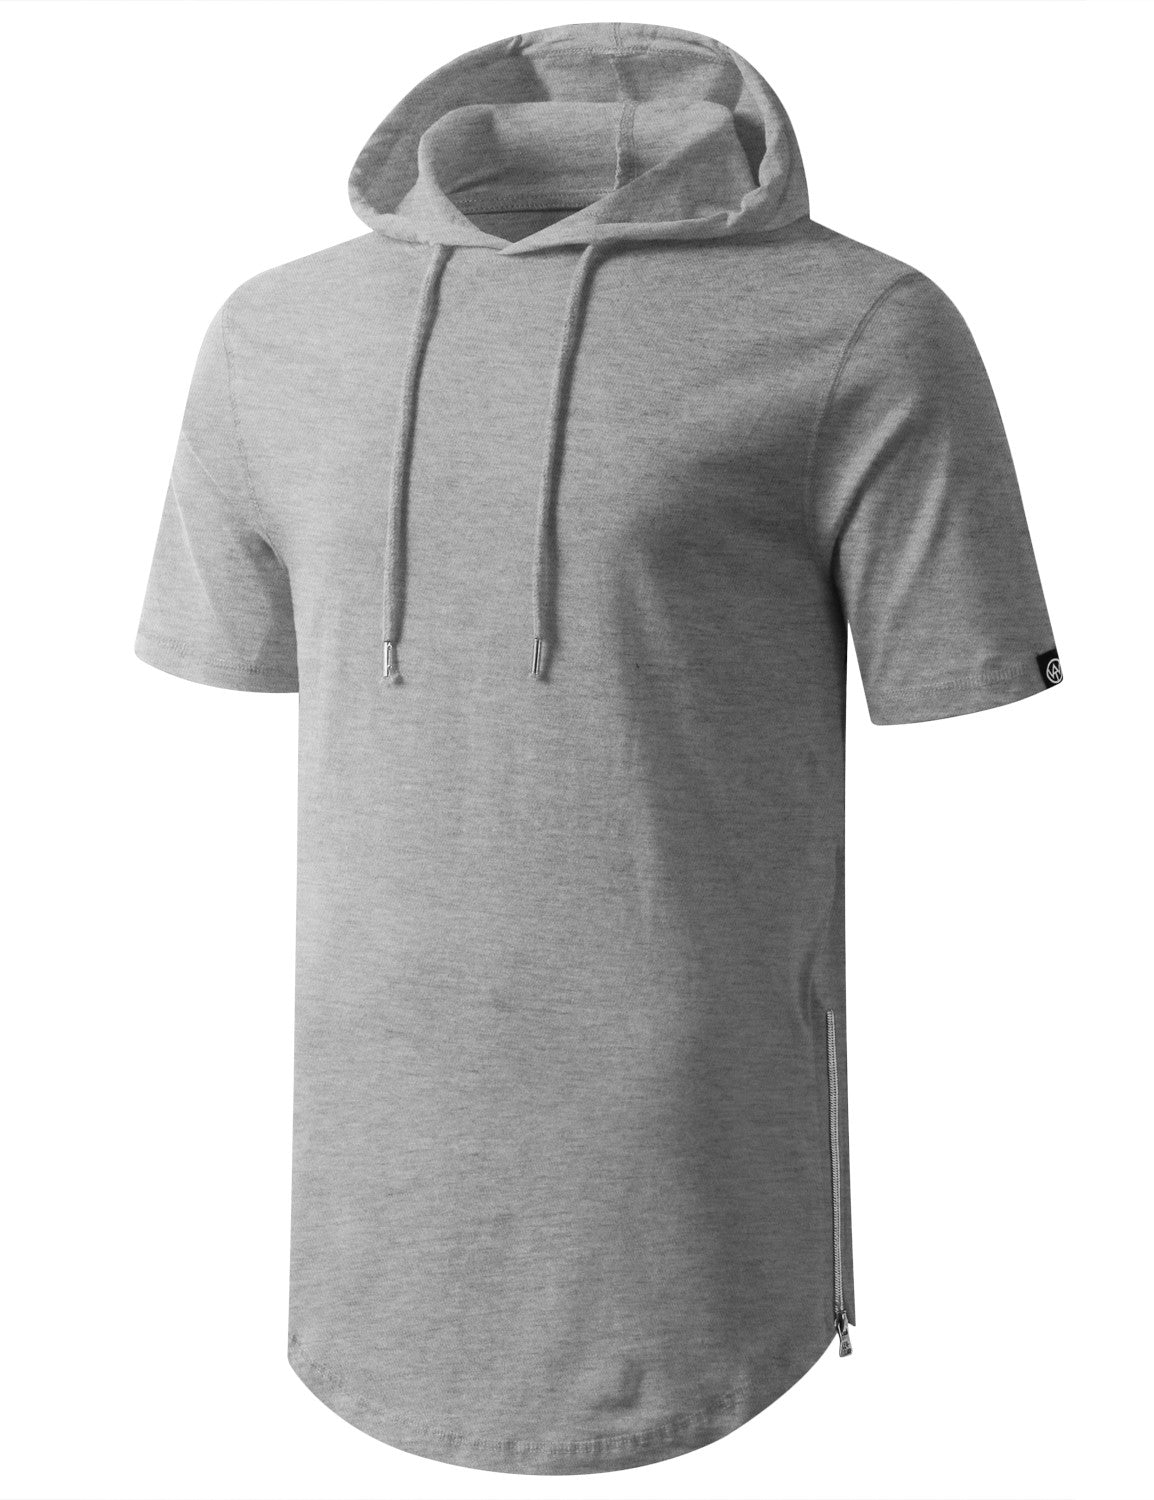 HGRAY Longline Short Sleeve Hoodie with Side Zipper